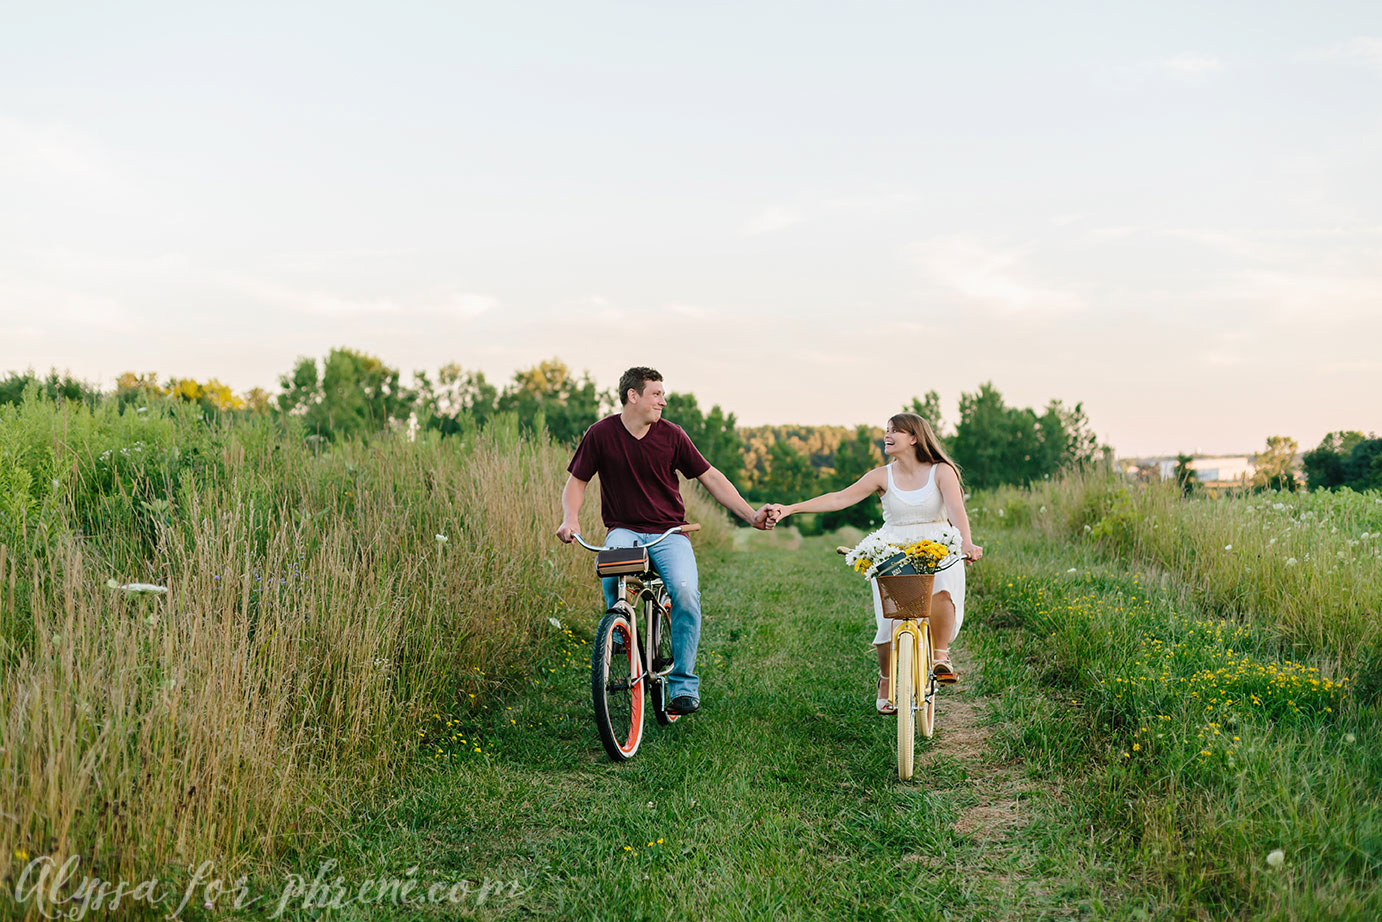 Grand_Rapids_Engagment_Photographer25.jpg